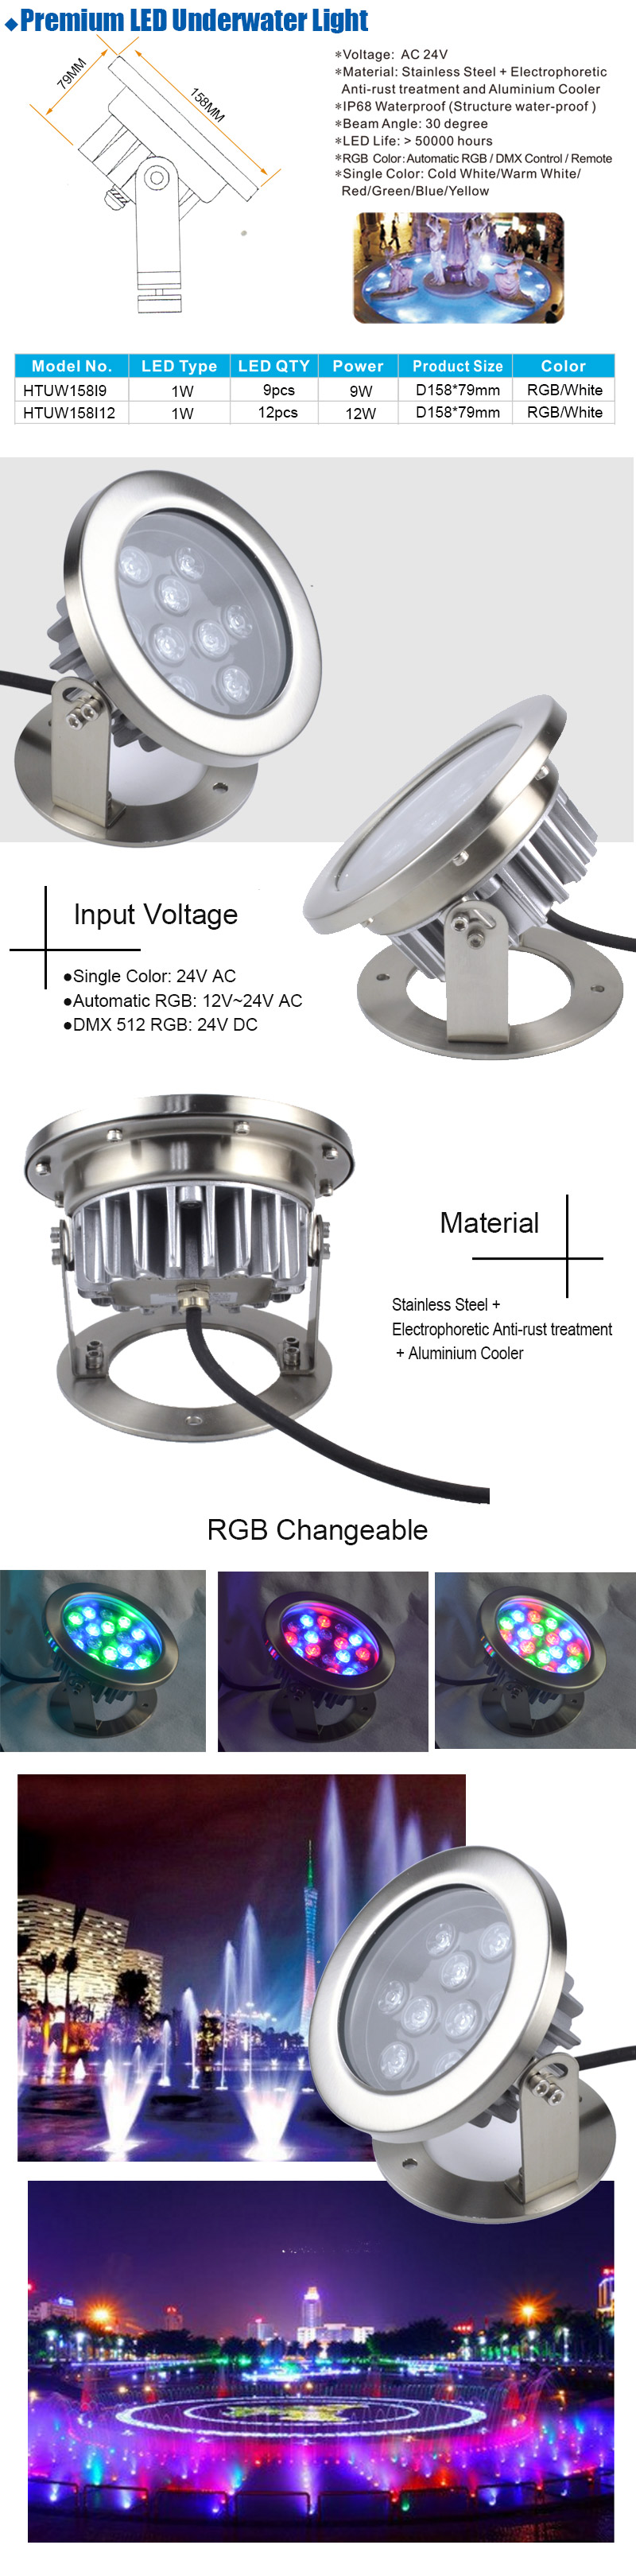 Premium 9W Stainless Steel High Power RGB LED Underwater Light With Radiator